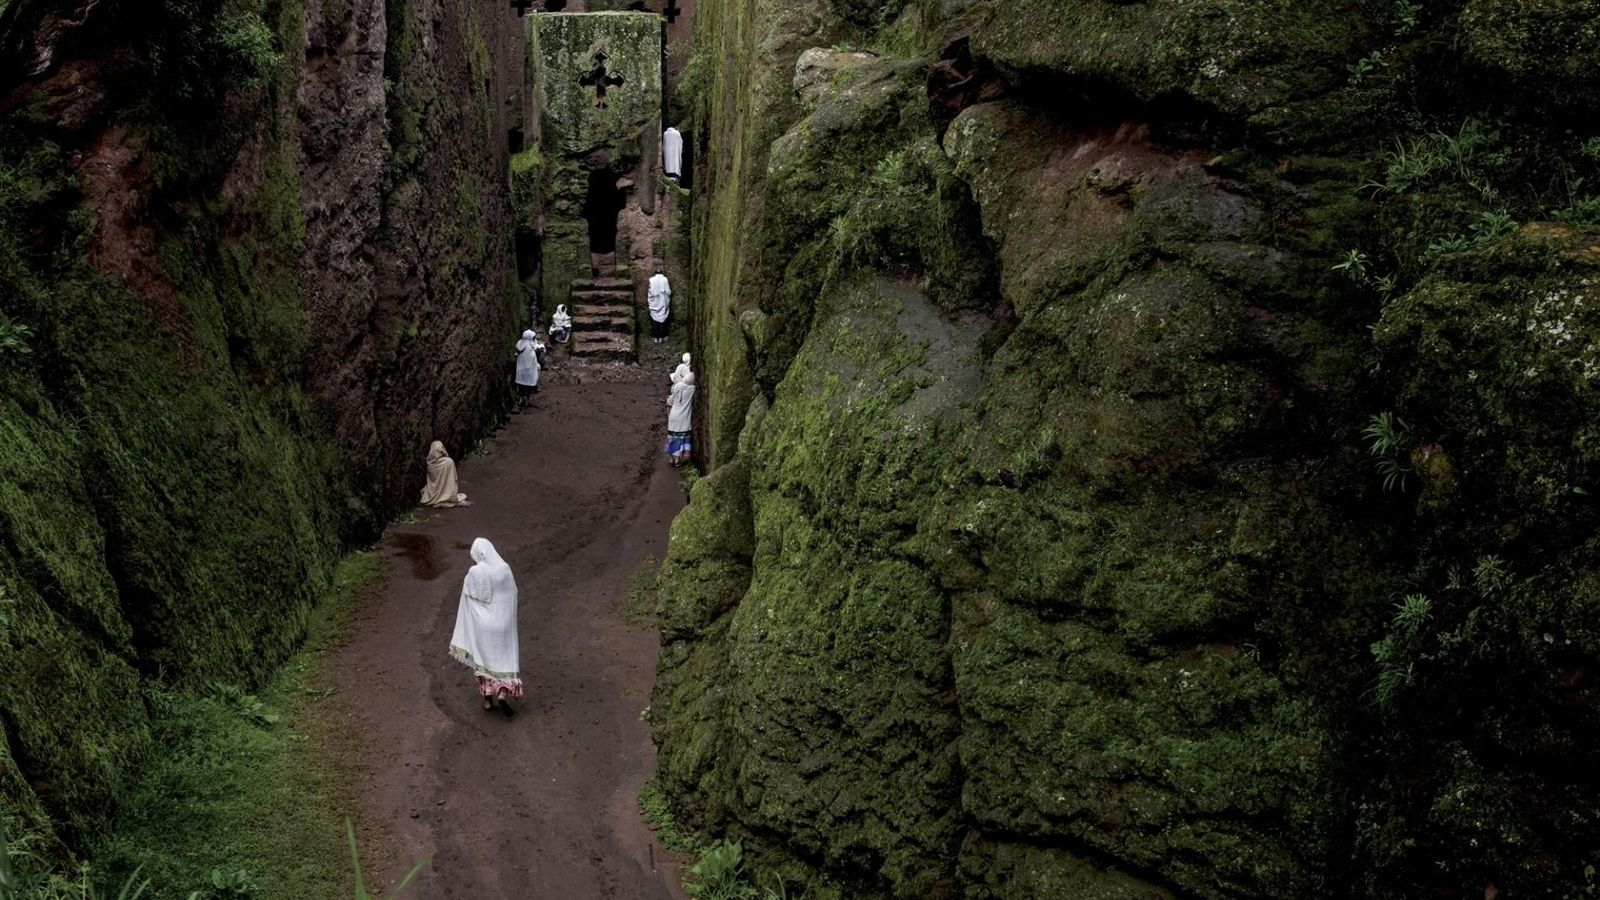 The highlands of northern Ethiopia are renowned for its magnificent early Christian churches carved out of ...